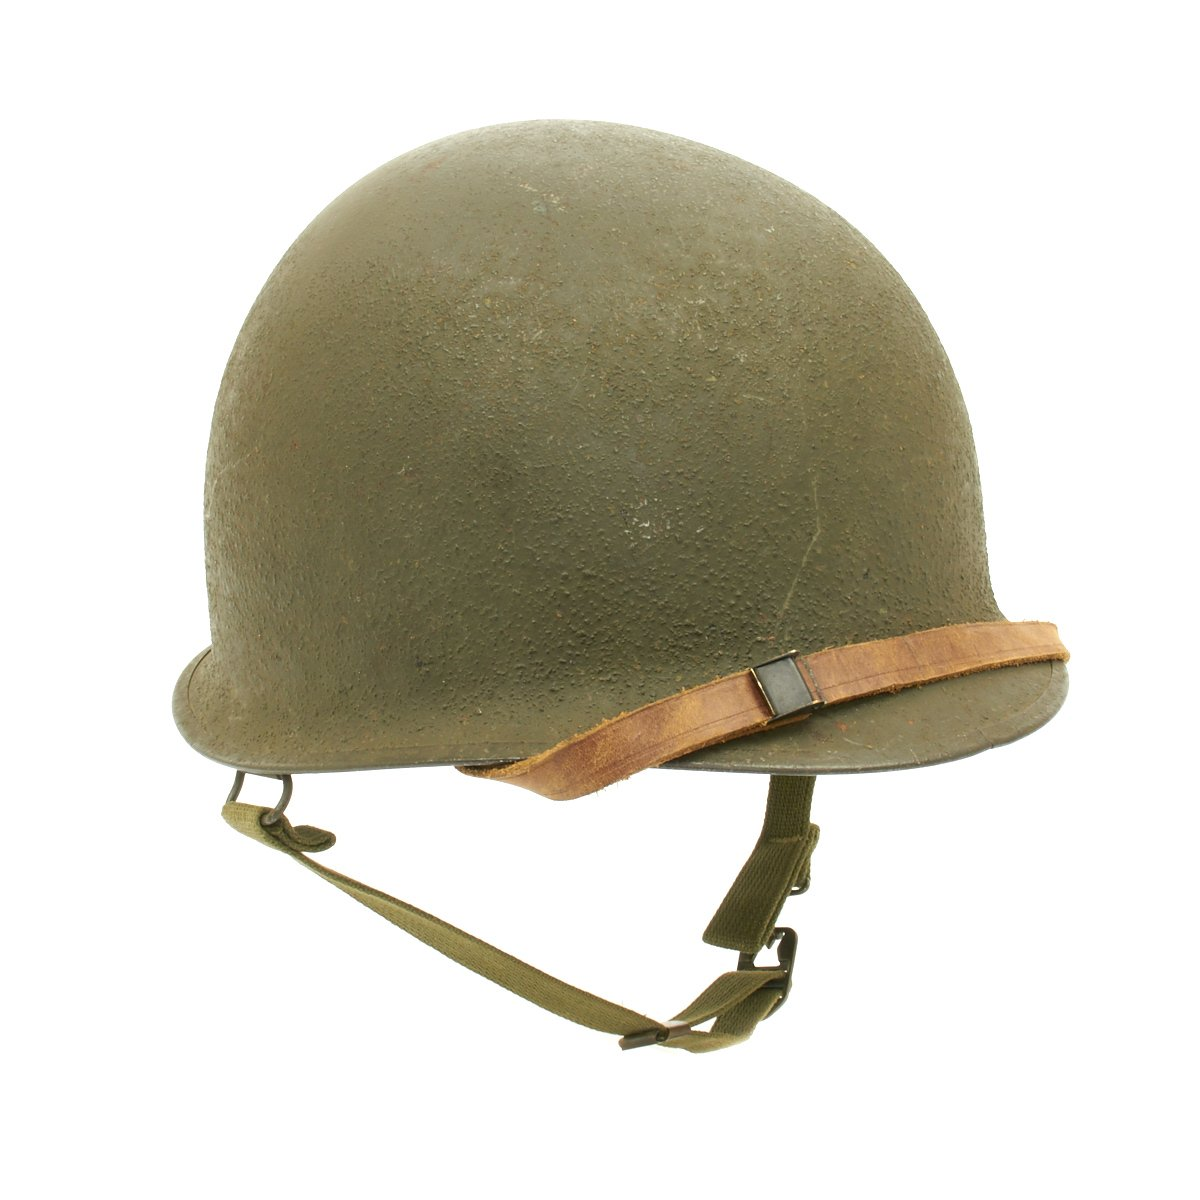 Dating mccord m1 helmet